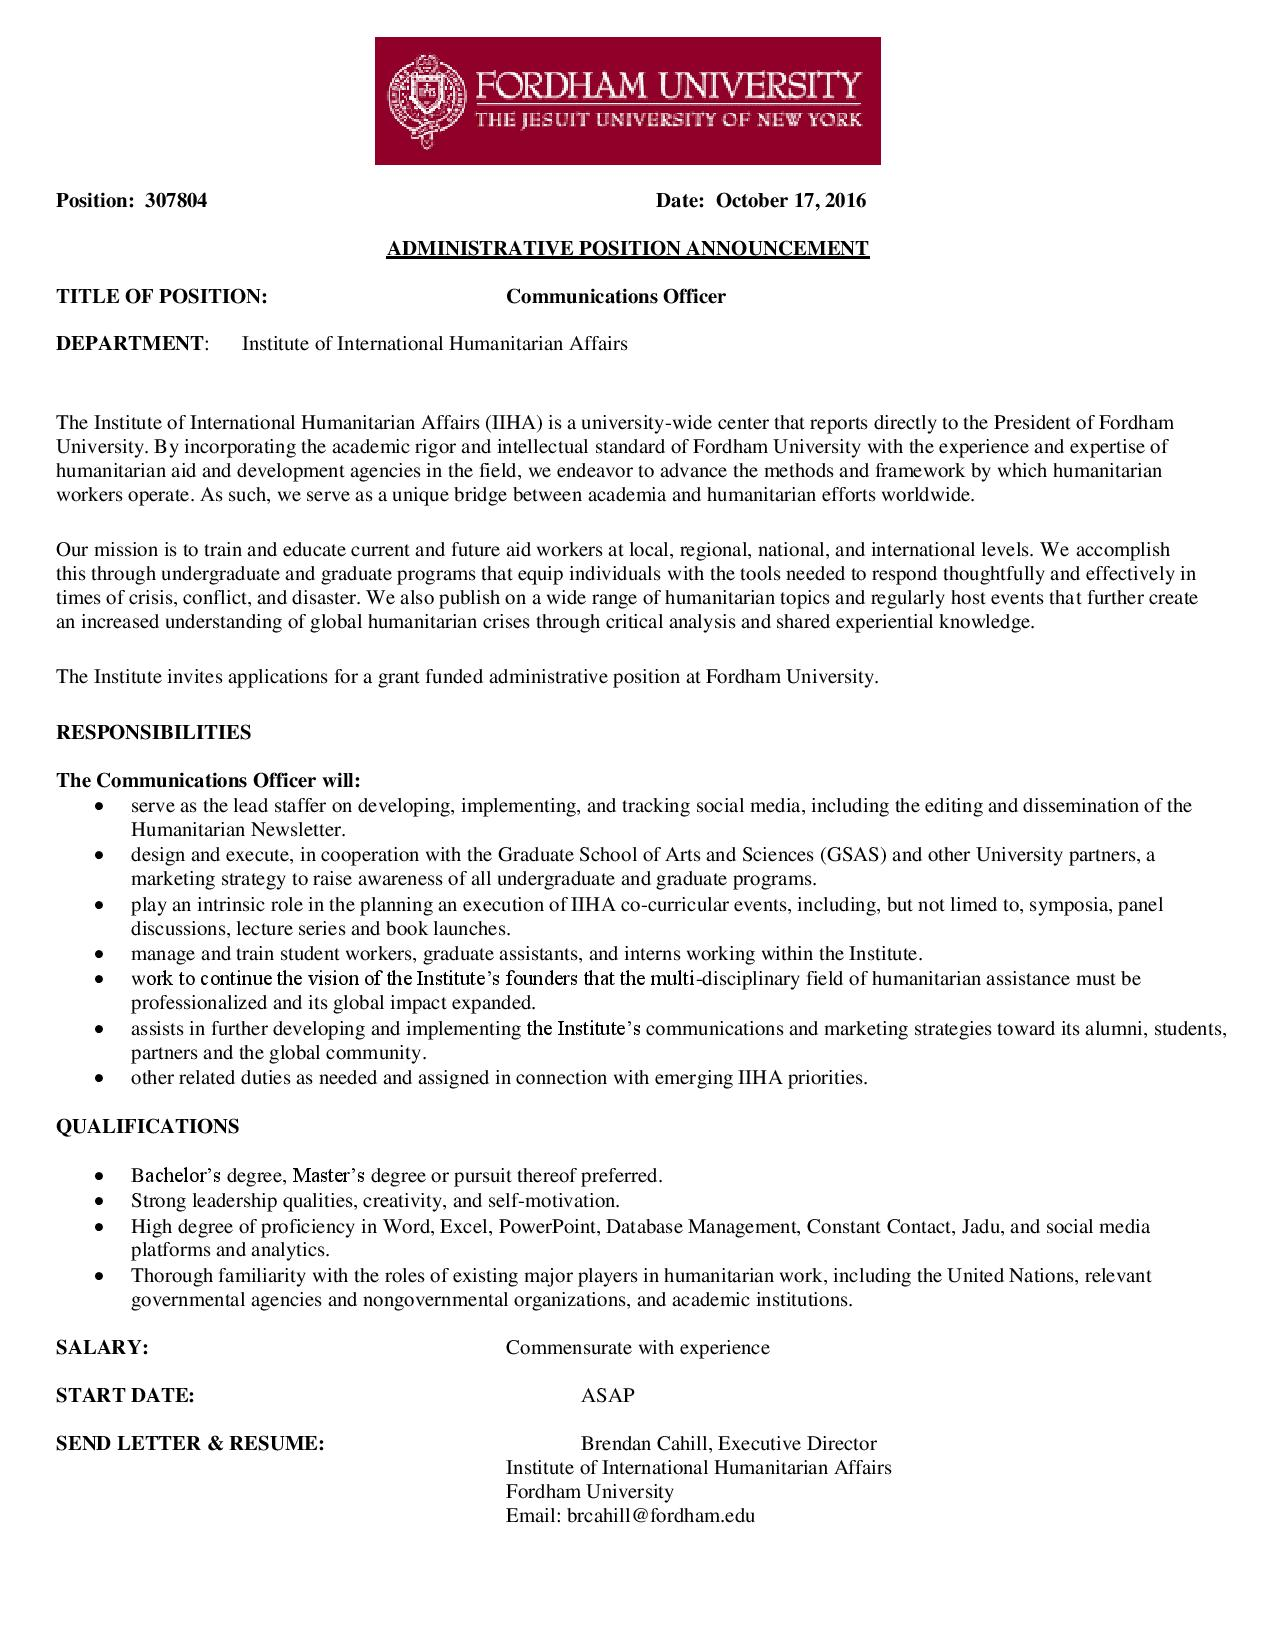 communications-officer